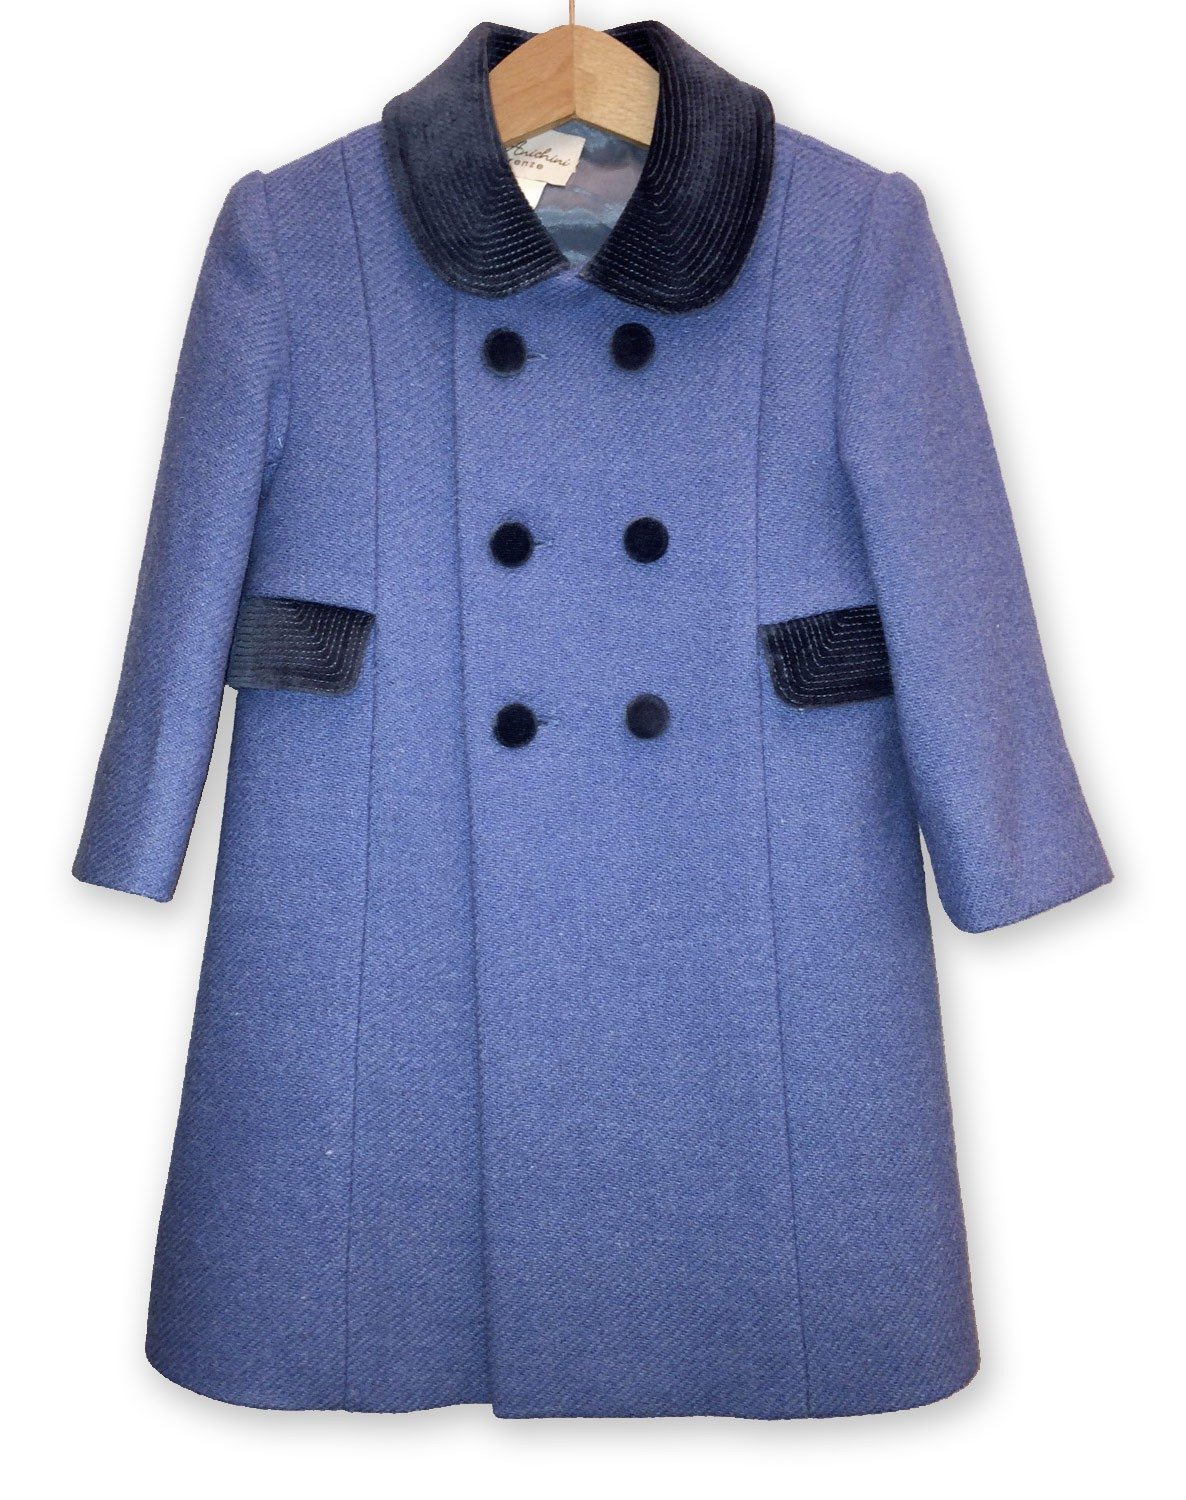 "Children ""Redingote"" winter coat, sugar paper color"